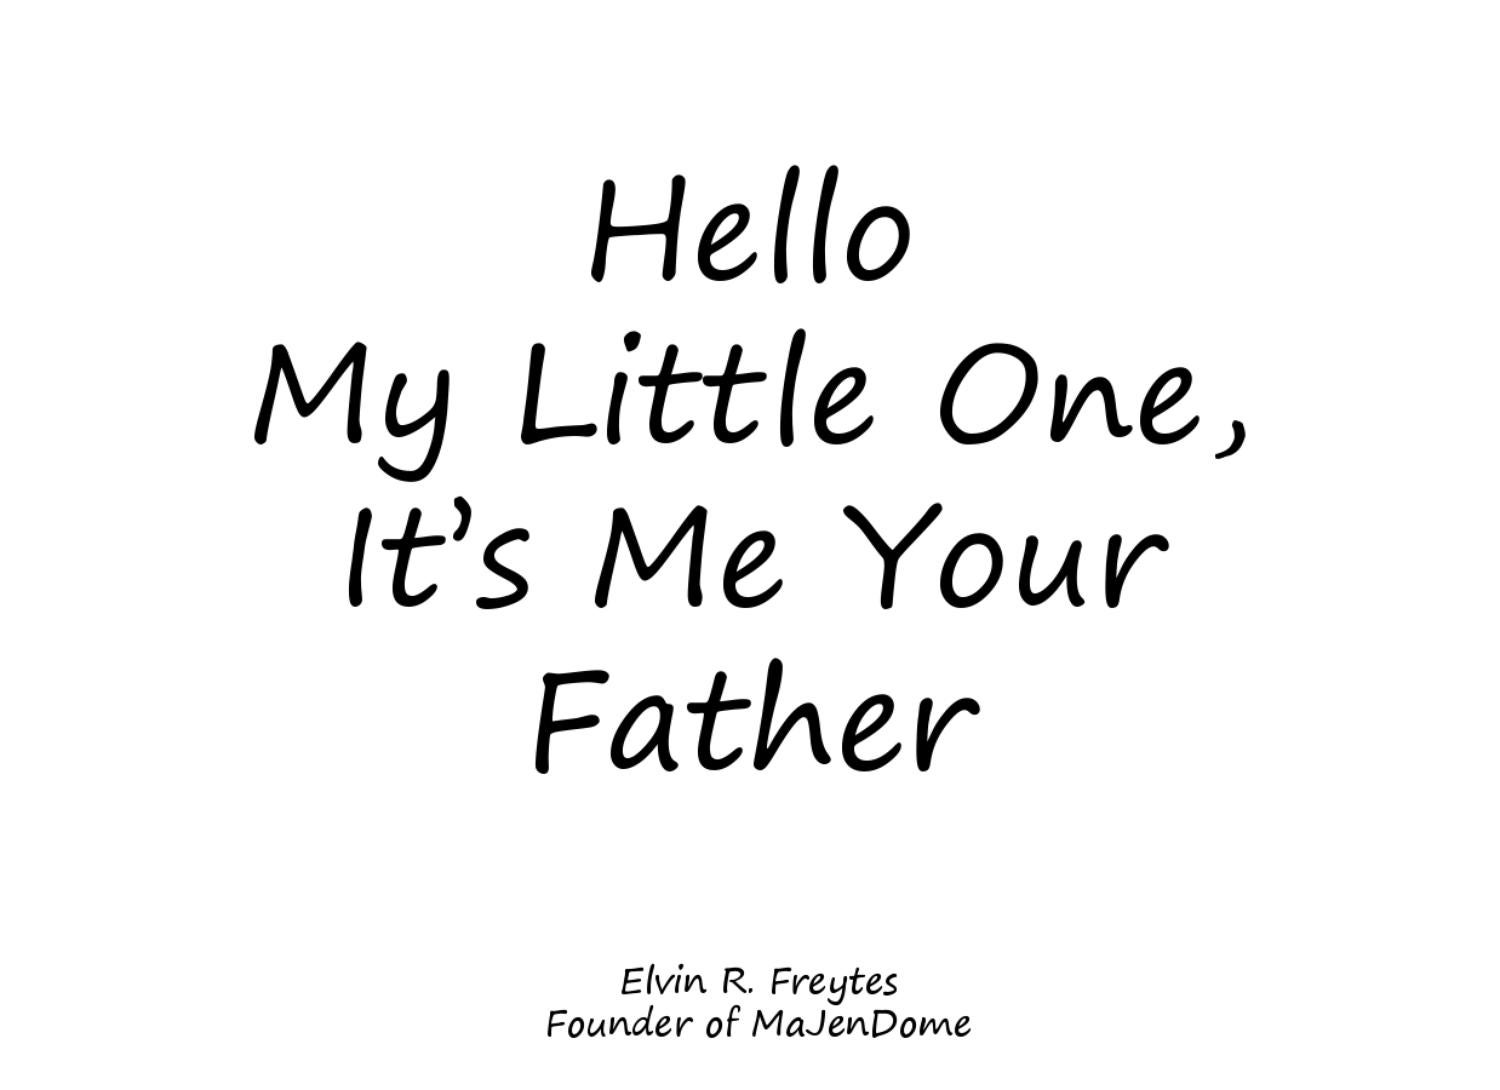 Hello My Little One, It's Me Your Father by Elvin Freytes